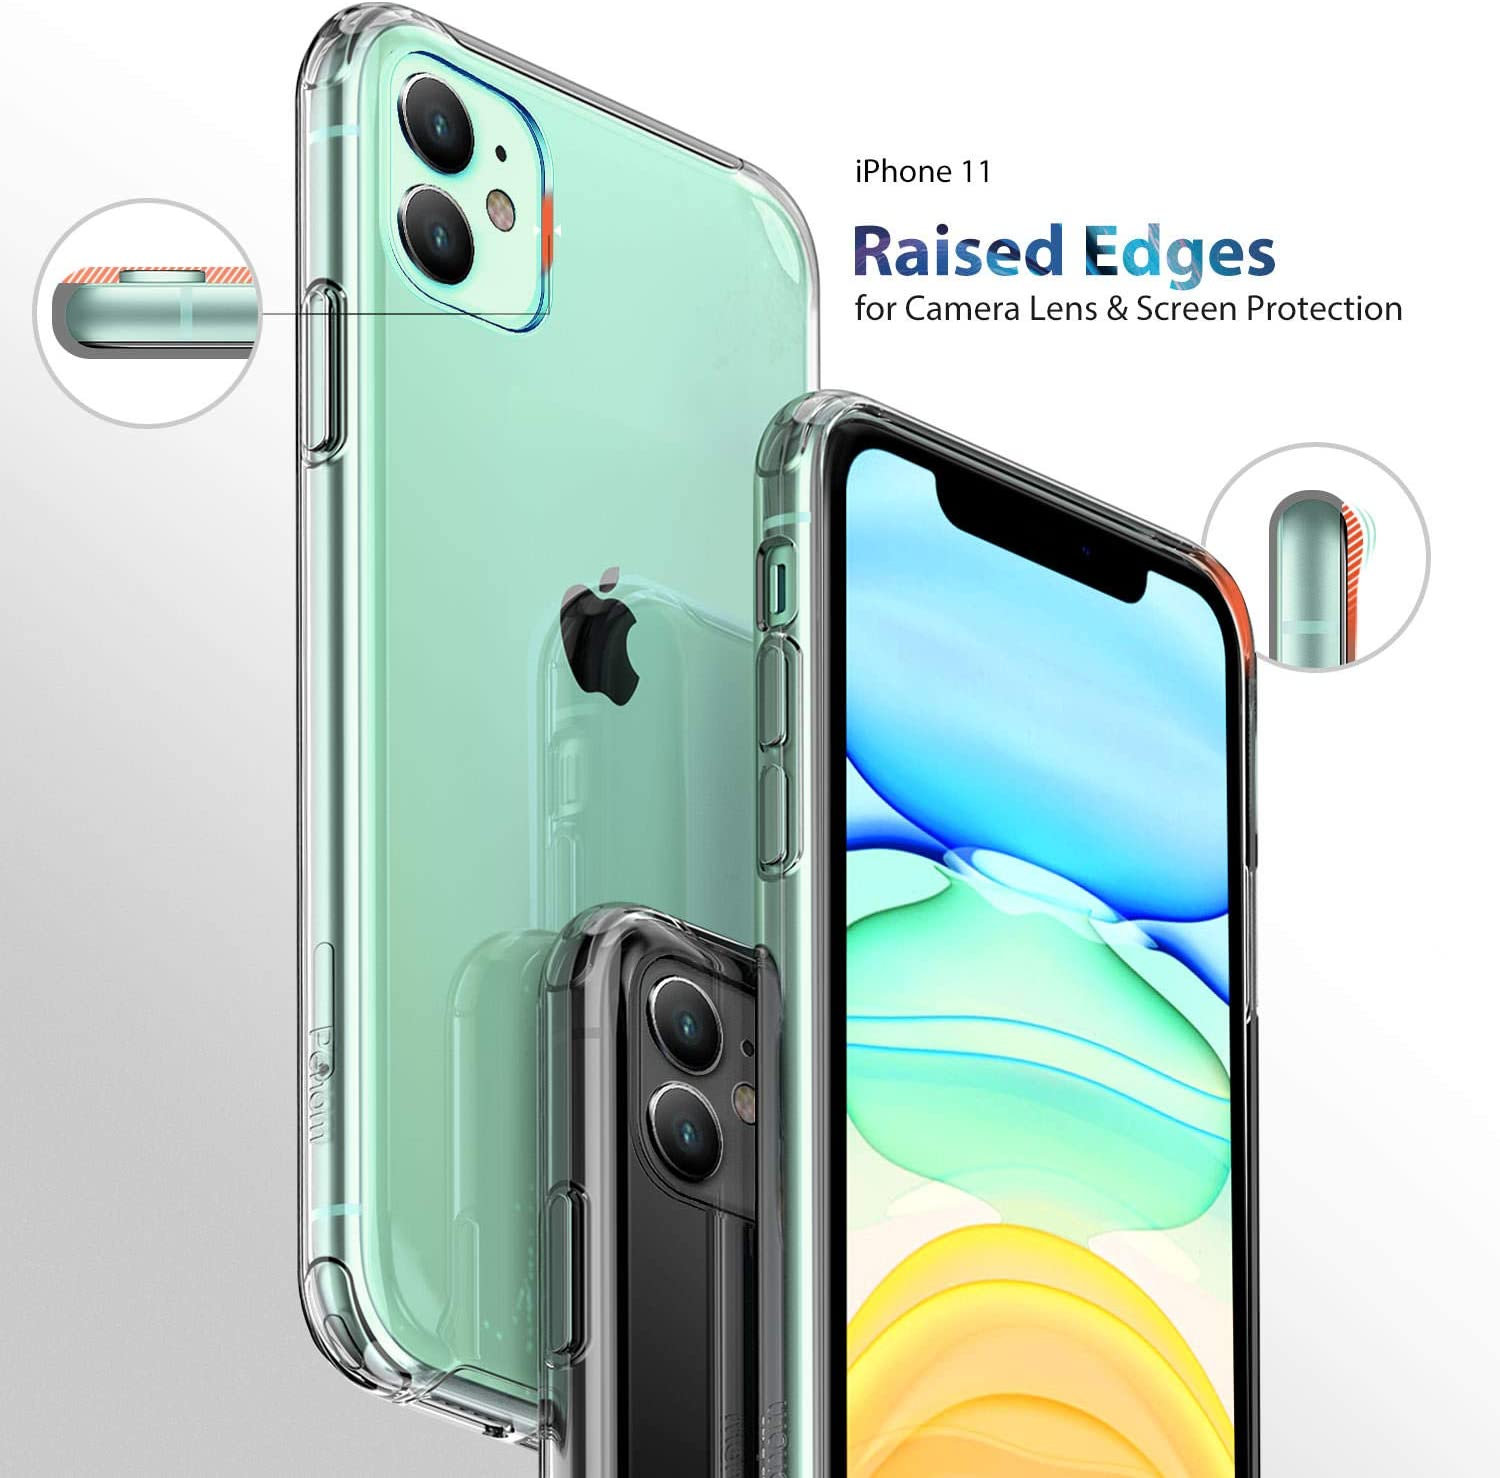 Buy UIYTRAESTING Compatible with iPhone 11 Case, Clear iPhone 11 Cases  Cover for iPhone11 6.1 Inch Online in Turkey. B07WRC5JBJ